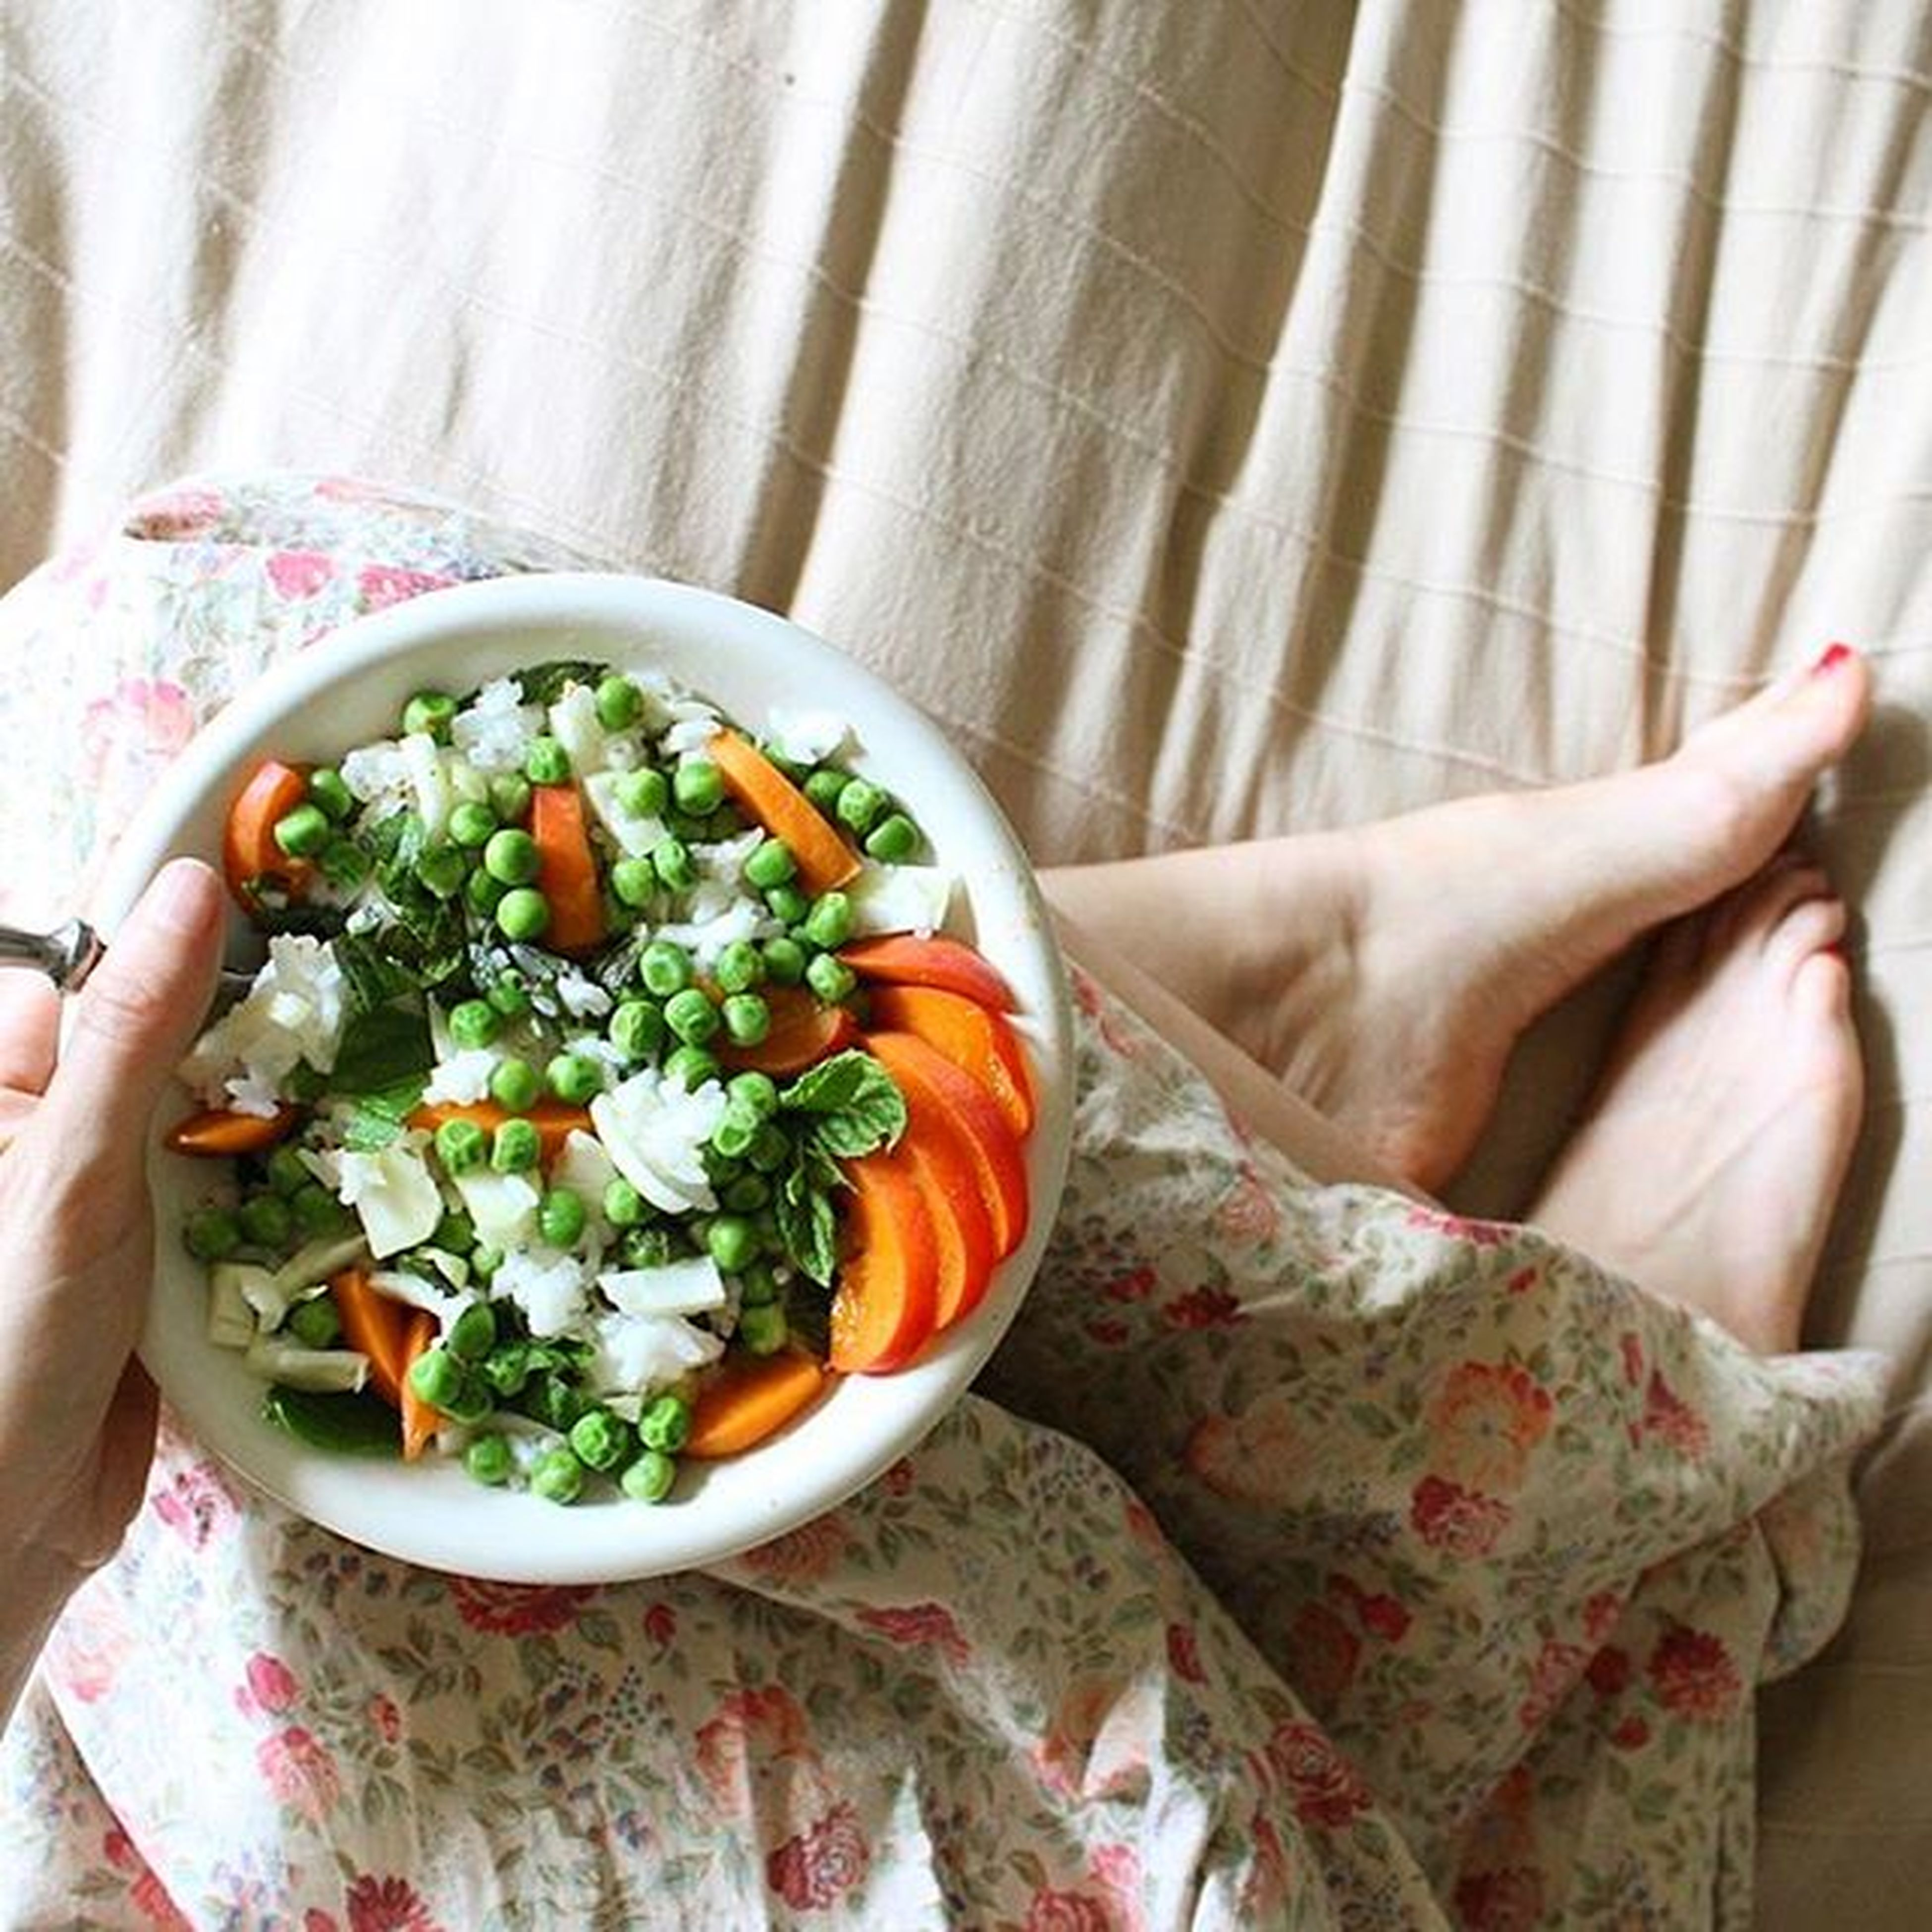 indoors, freshness, food and drink, table, food, healthy eating, bowl, plate, still life, high angle view, close-up, home interior, salad, no people, vegetable, ready-to-eat, tablecloth, flower, fabric, white color